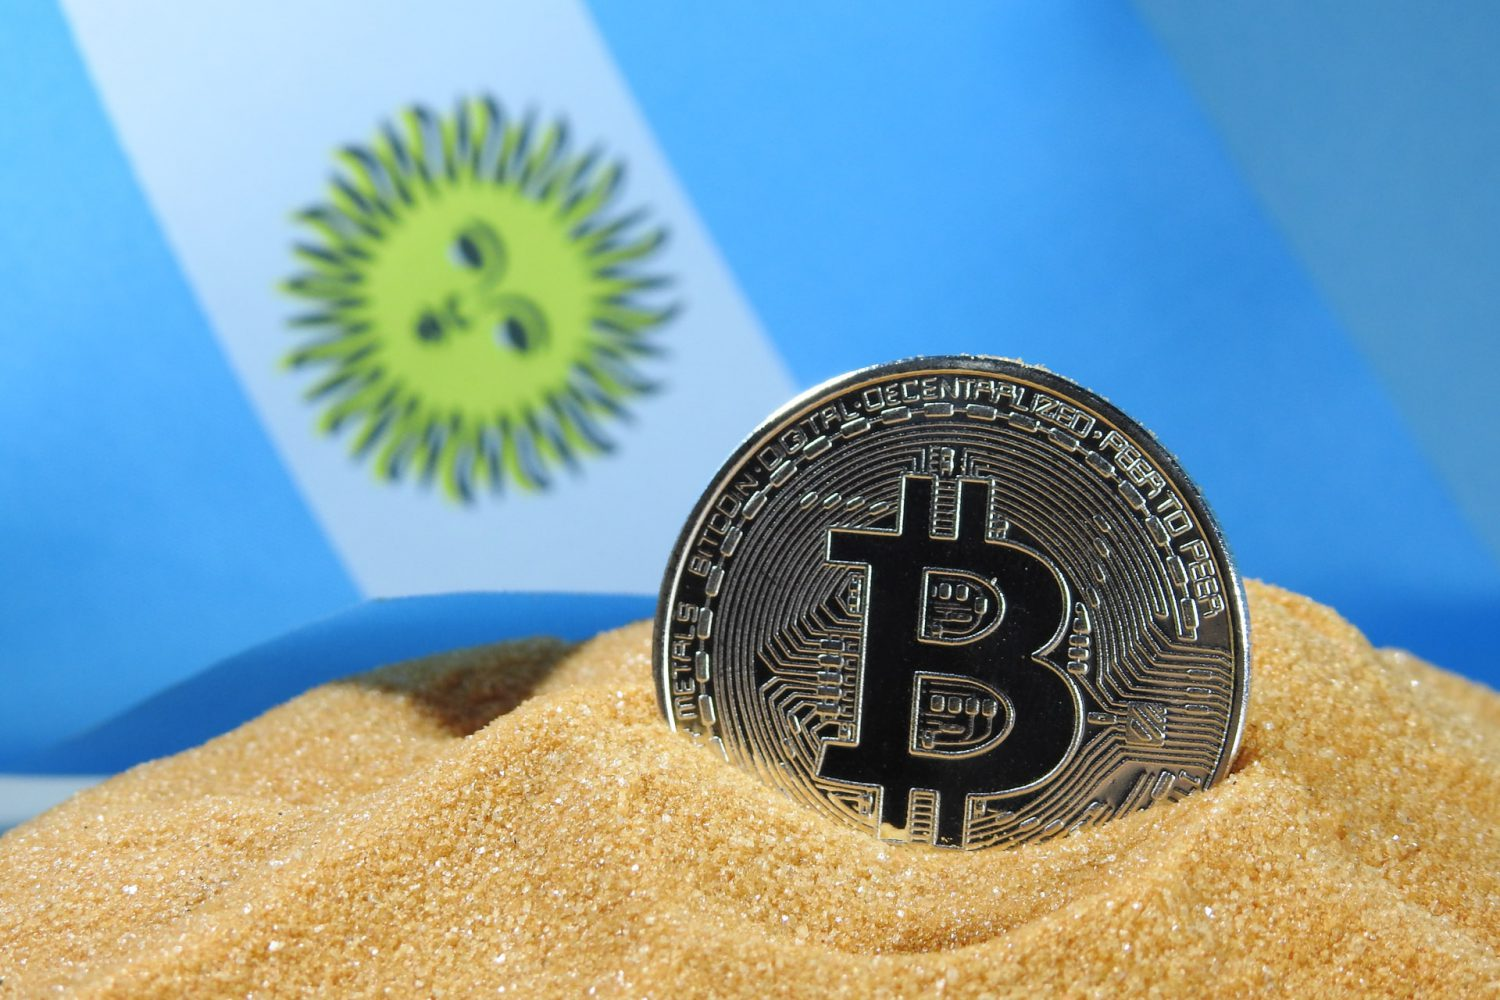 Cloudbet has integrated MarkerDAO's Stablecoin Dai in response to demand in Argentina